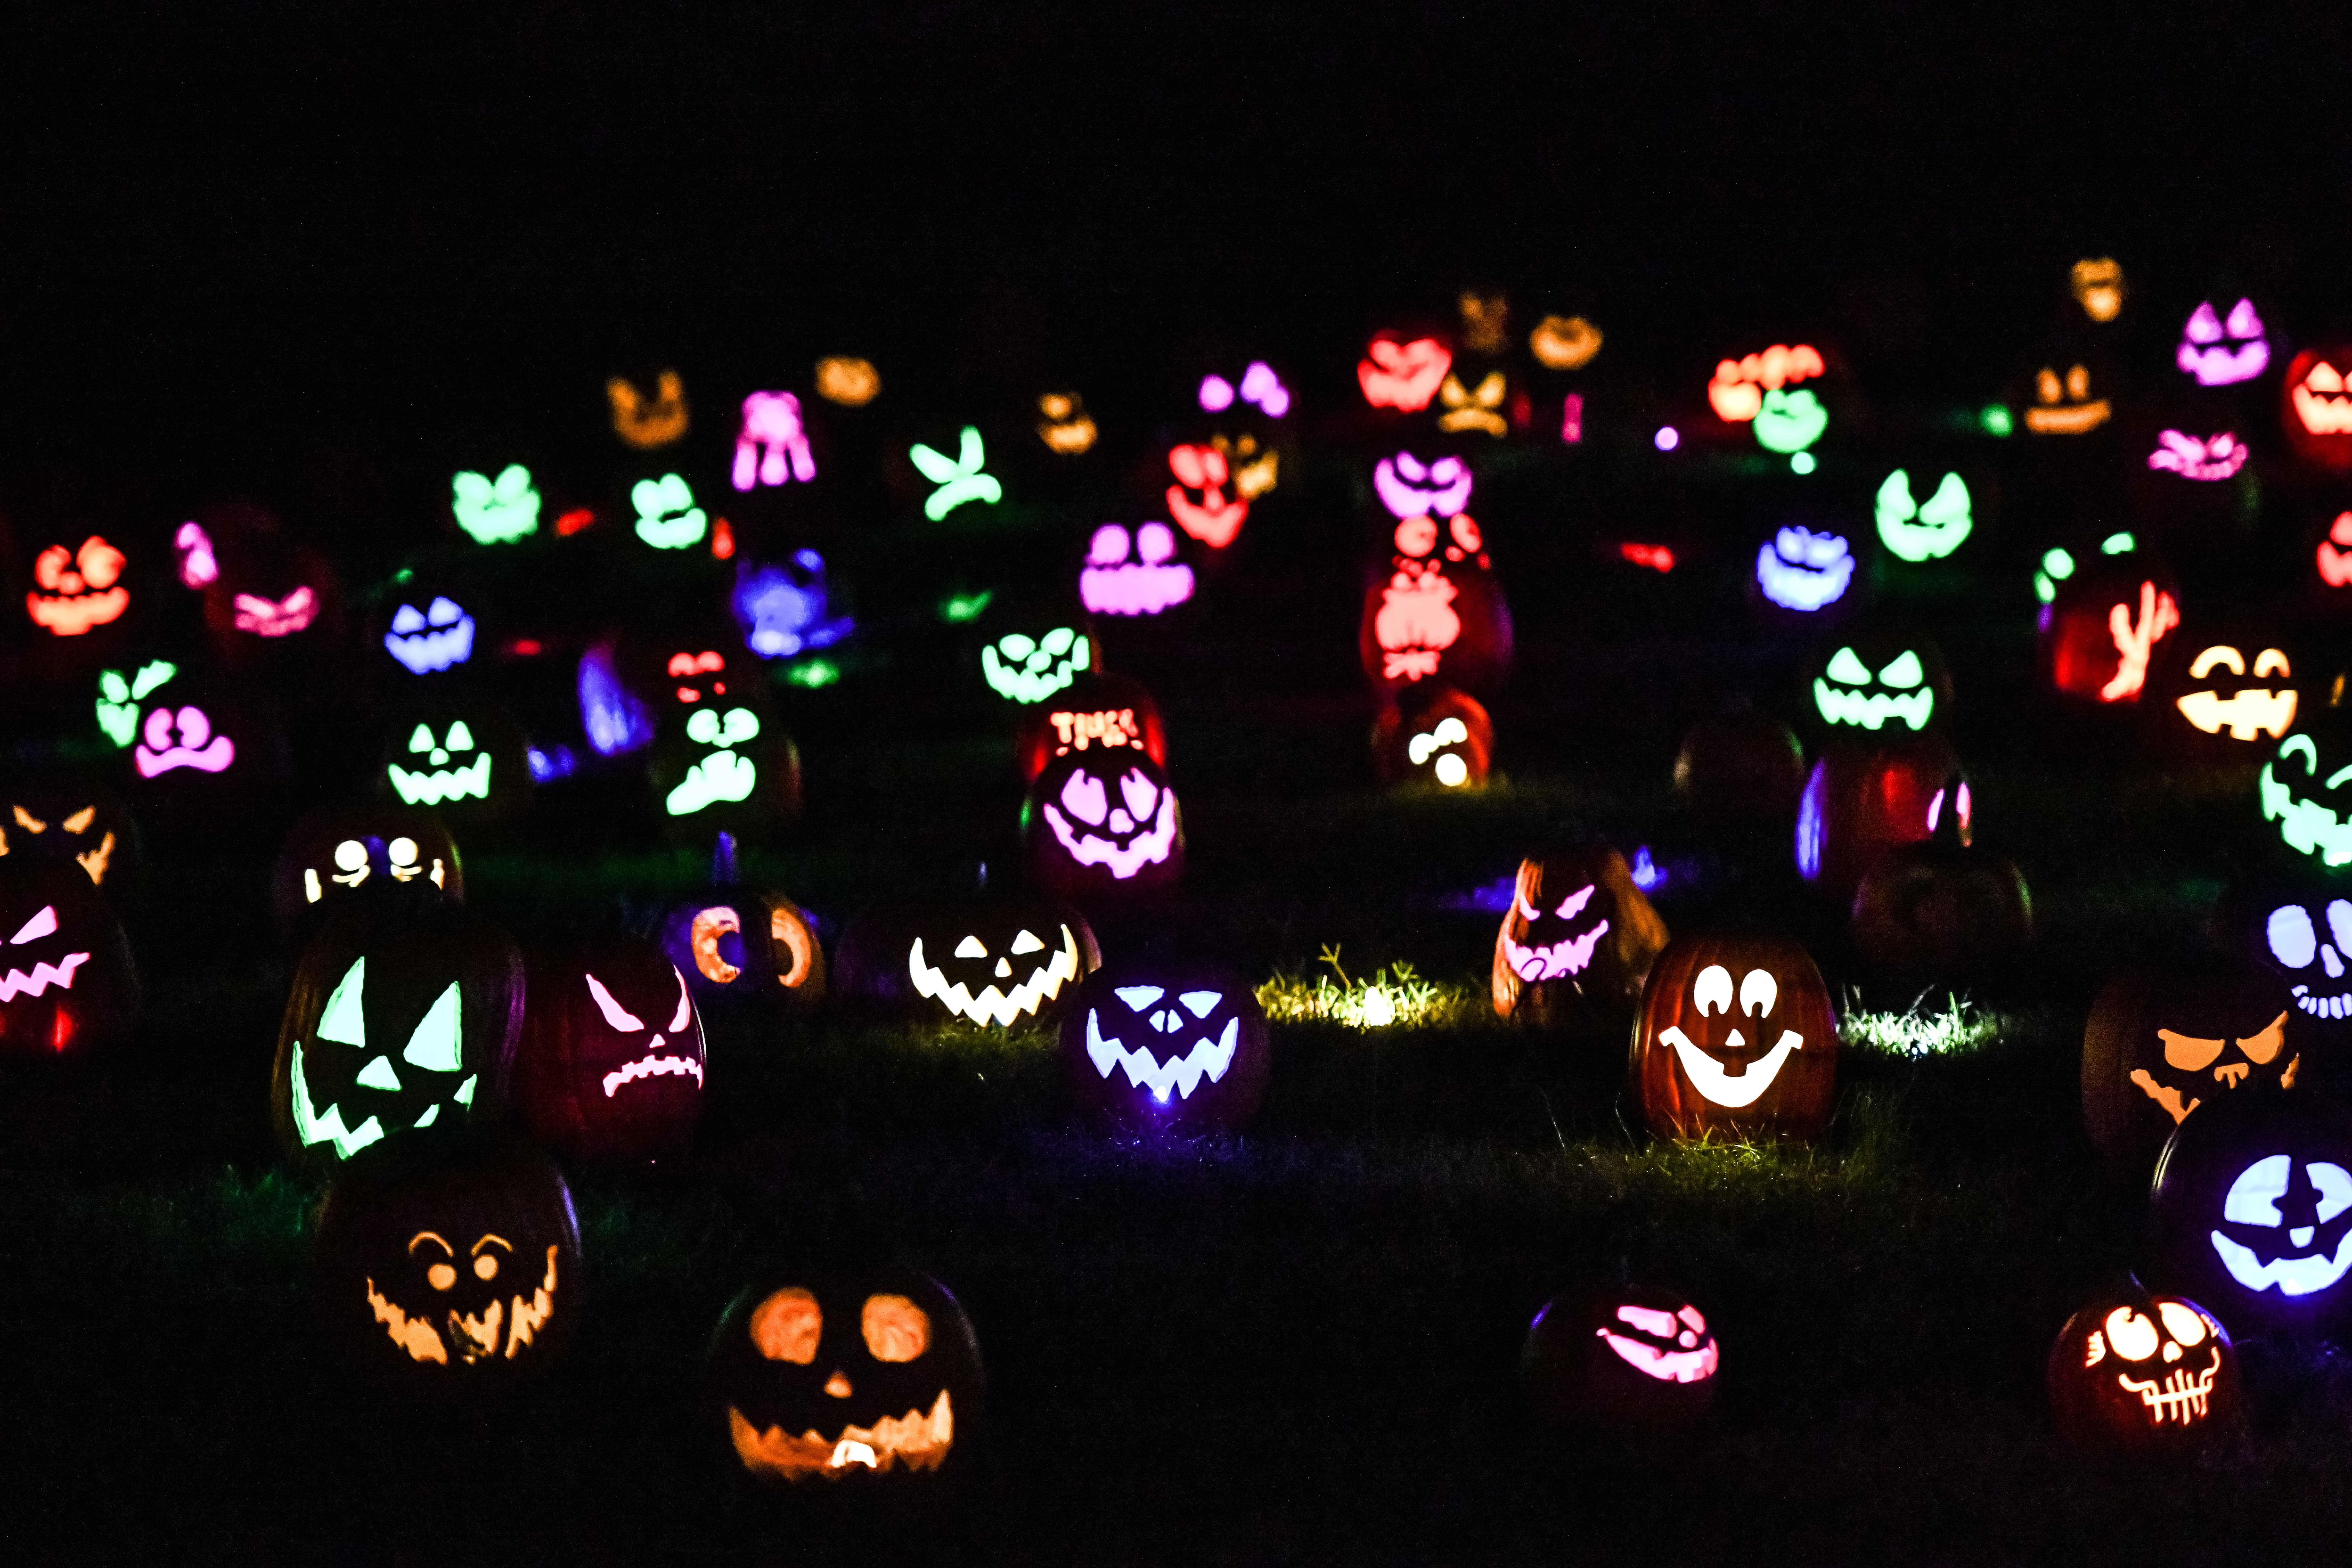 5,000 hand-carved pumpkins (done in real time),  life-sized sculptures and classic Halloween characters line the trail of the Sensory Garden park during Jack's Pumpkin Glow in Lisle.